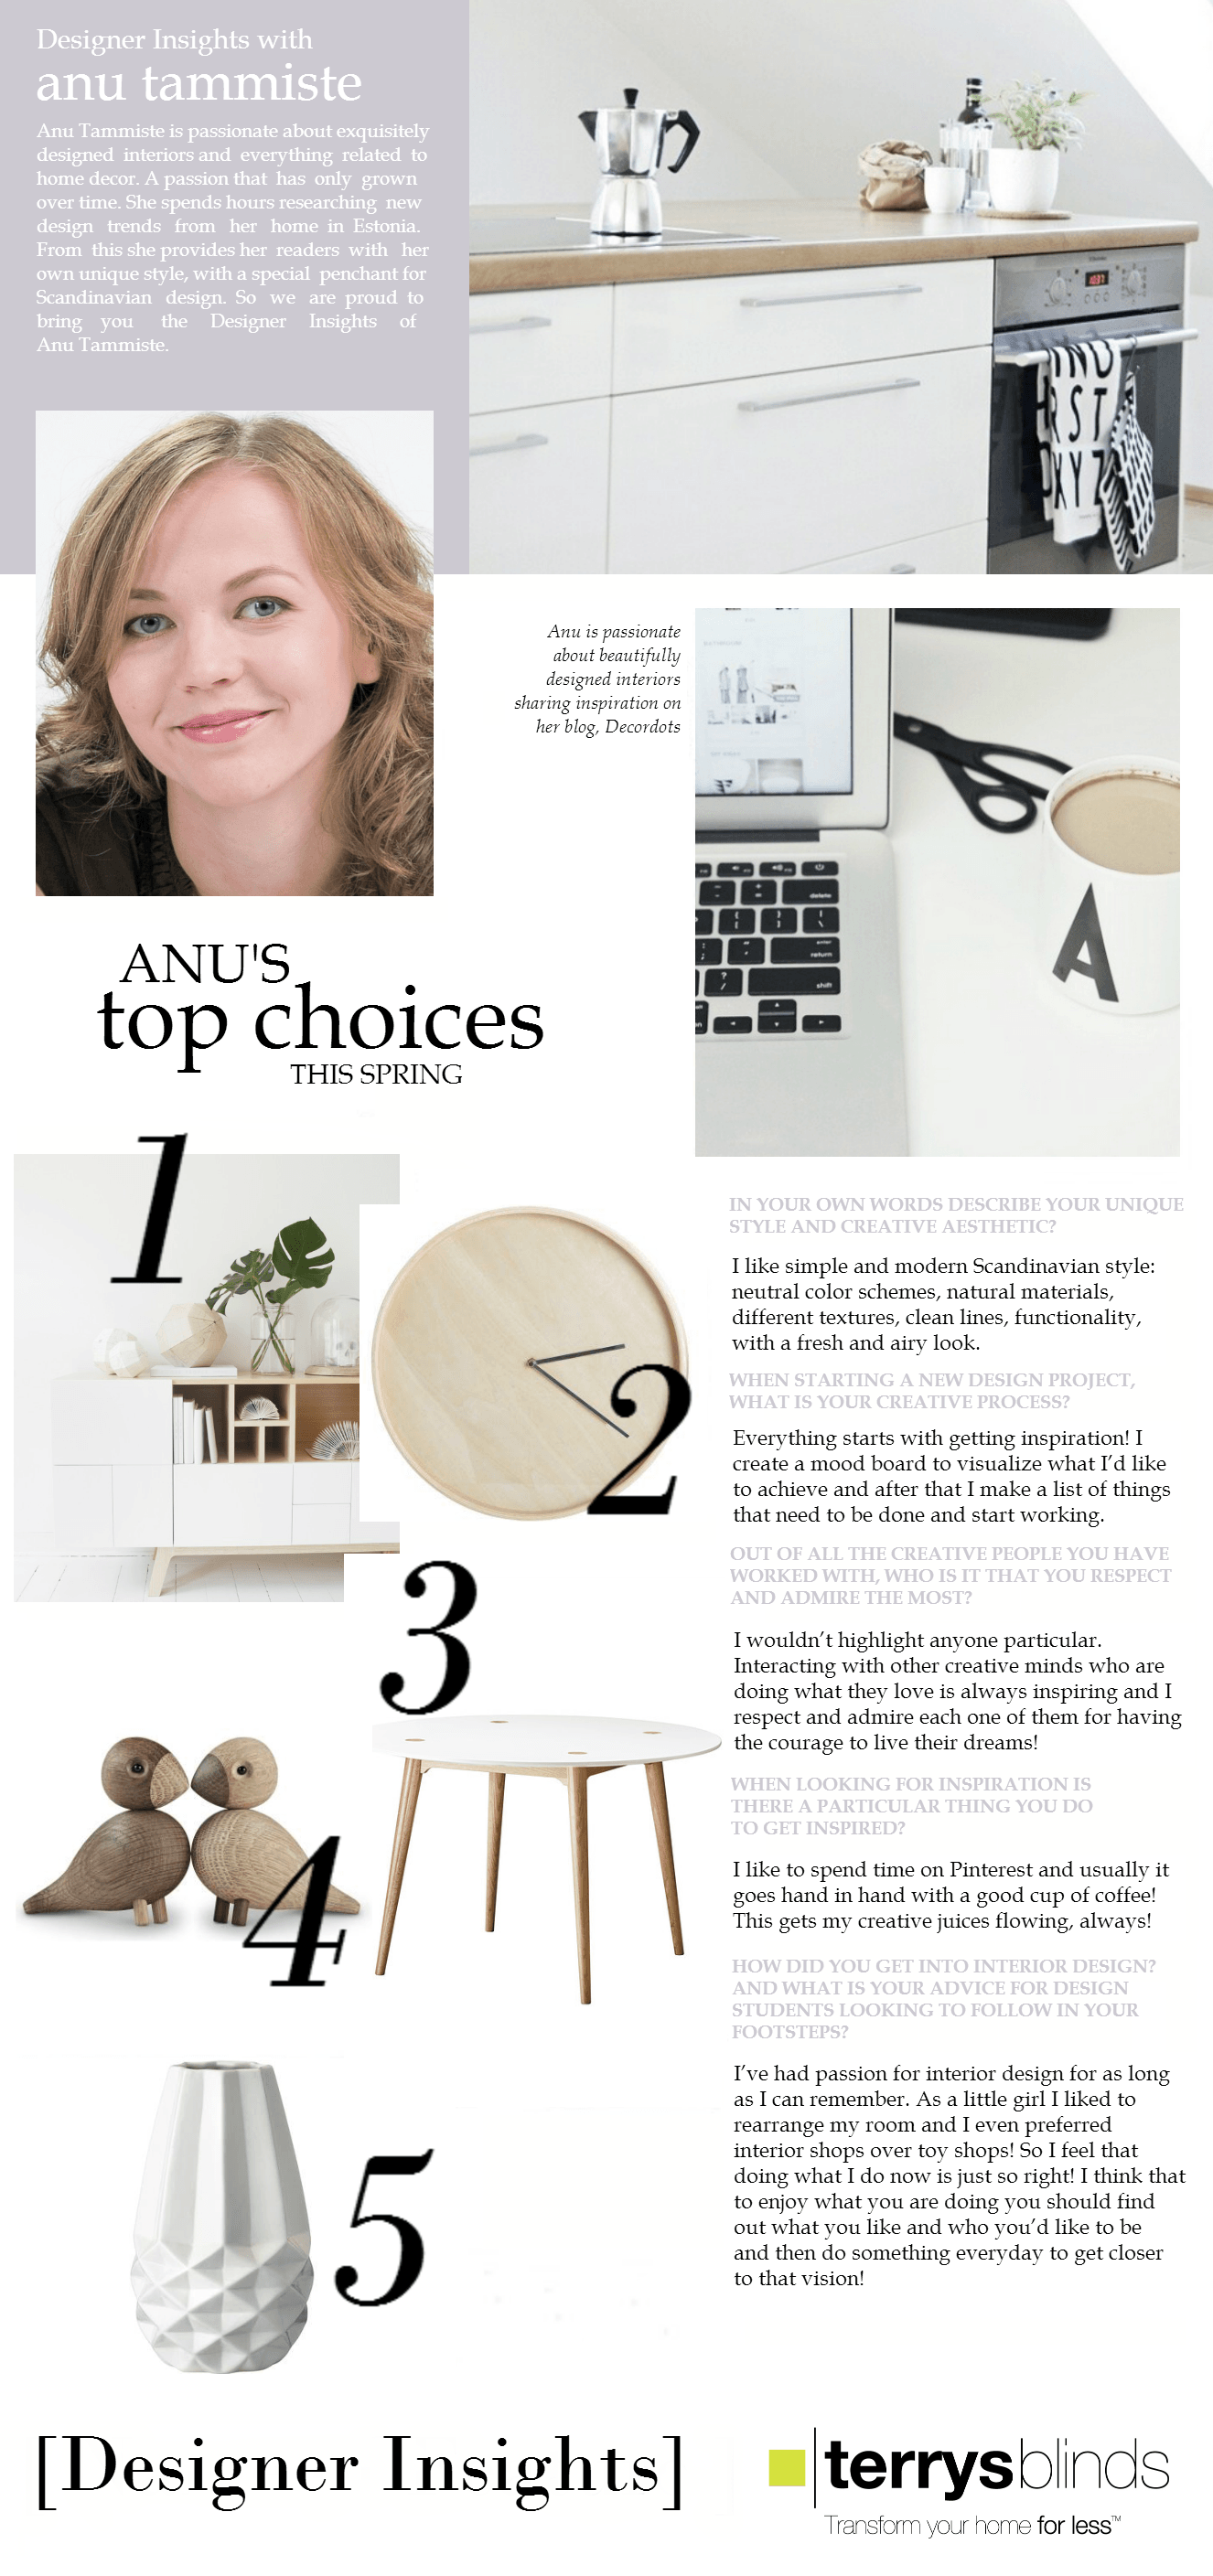 Designer-Insights-with-Anu-Tammiste